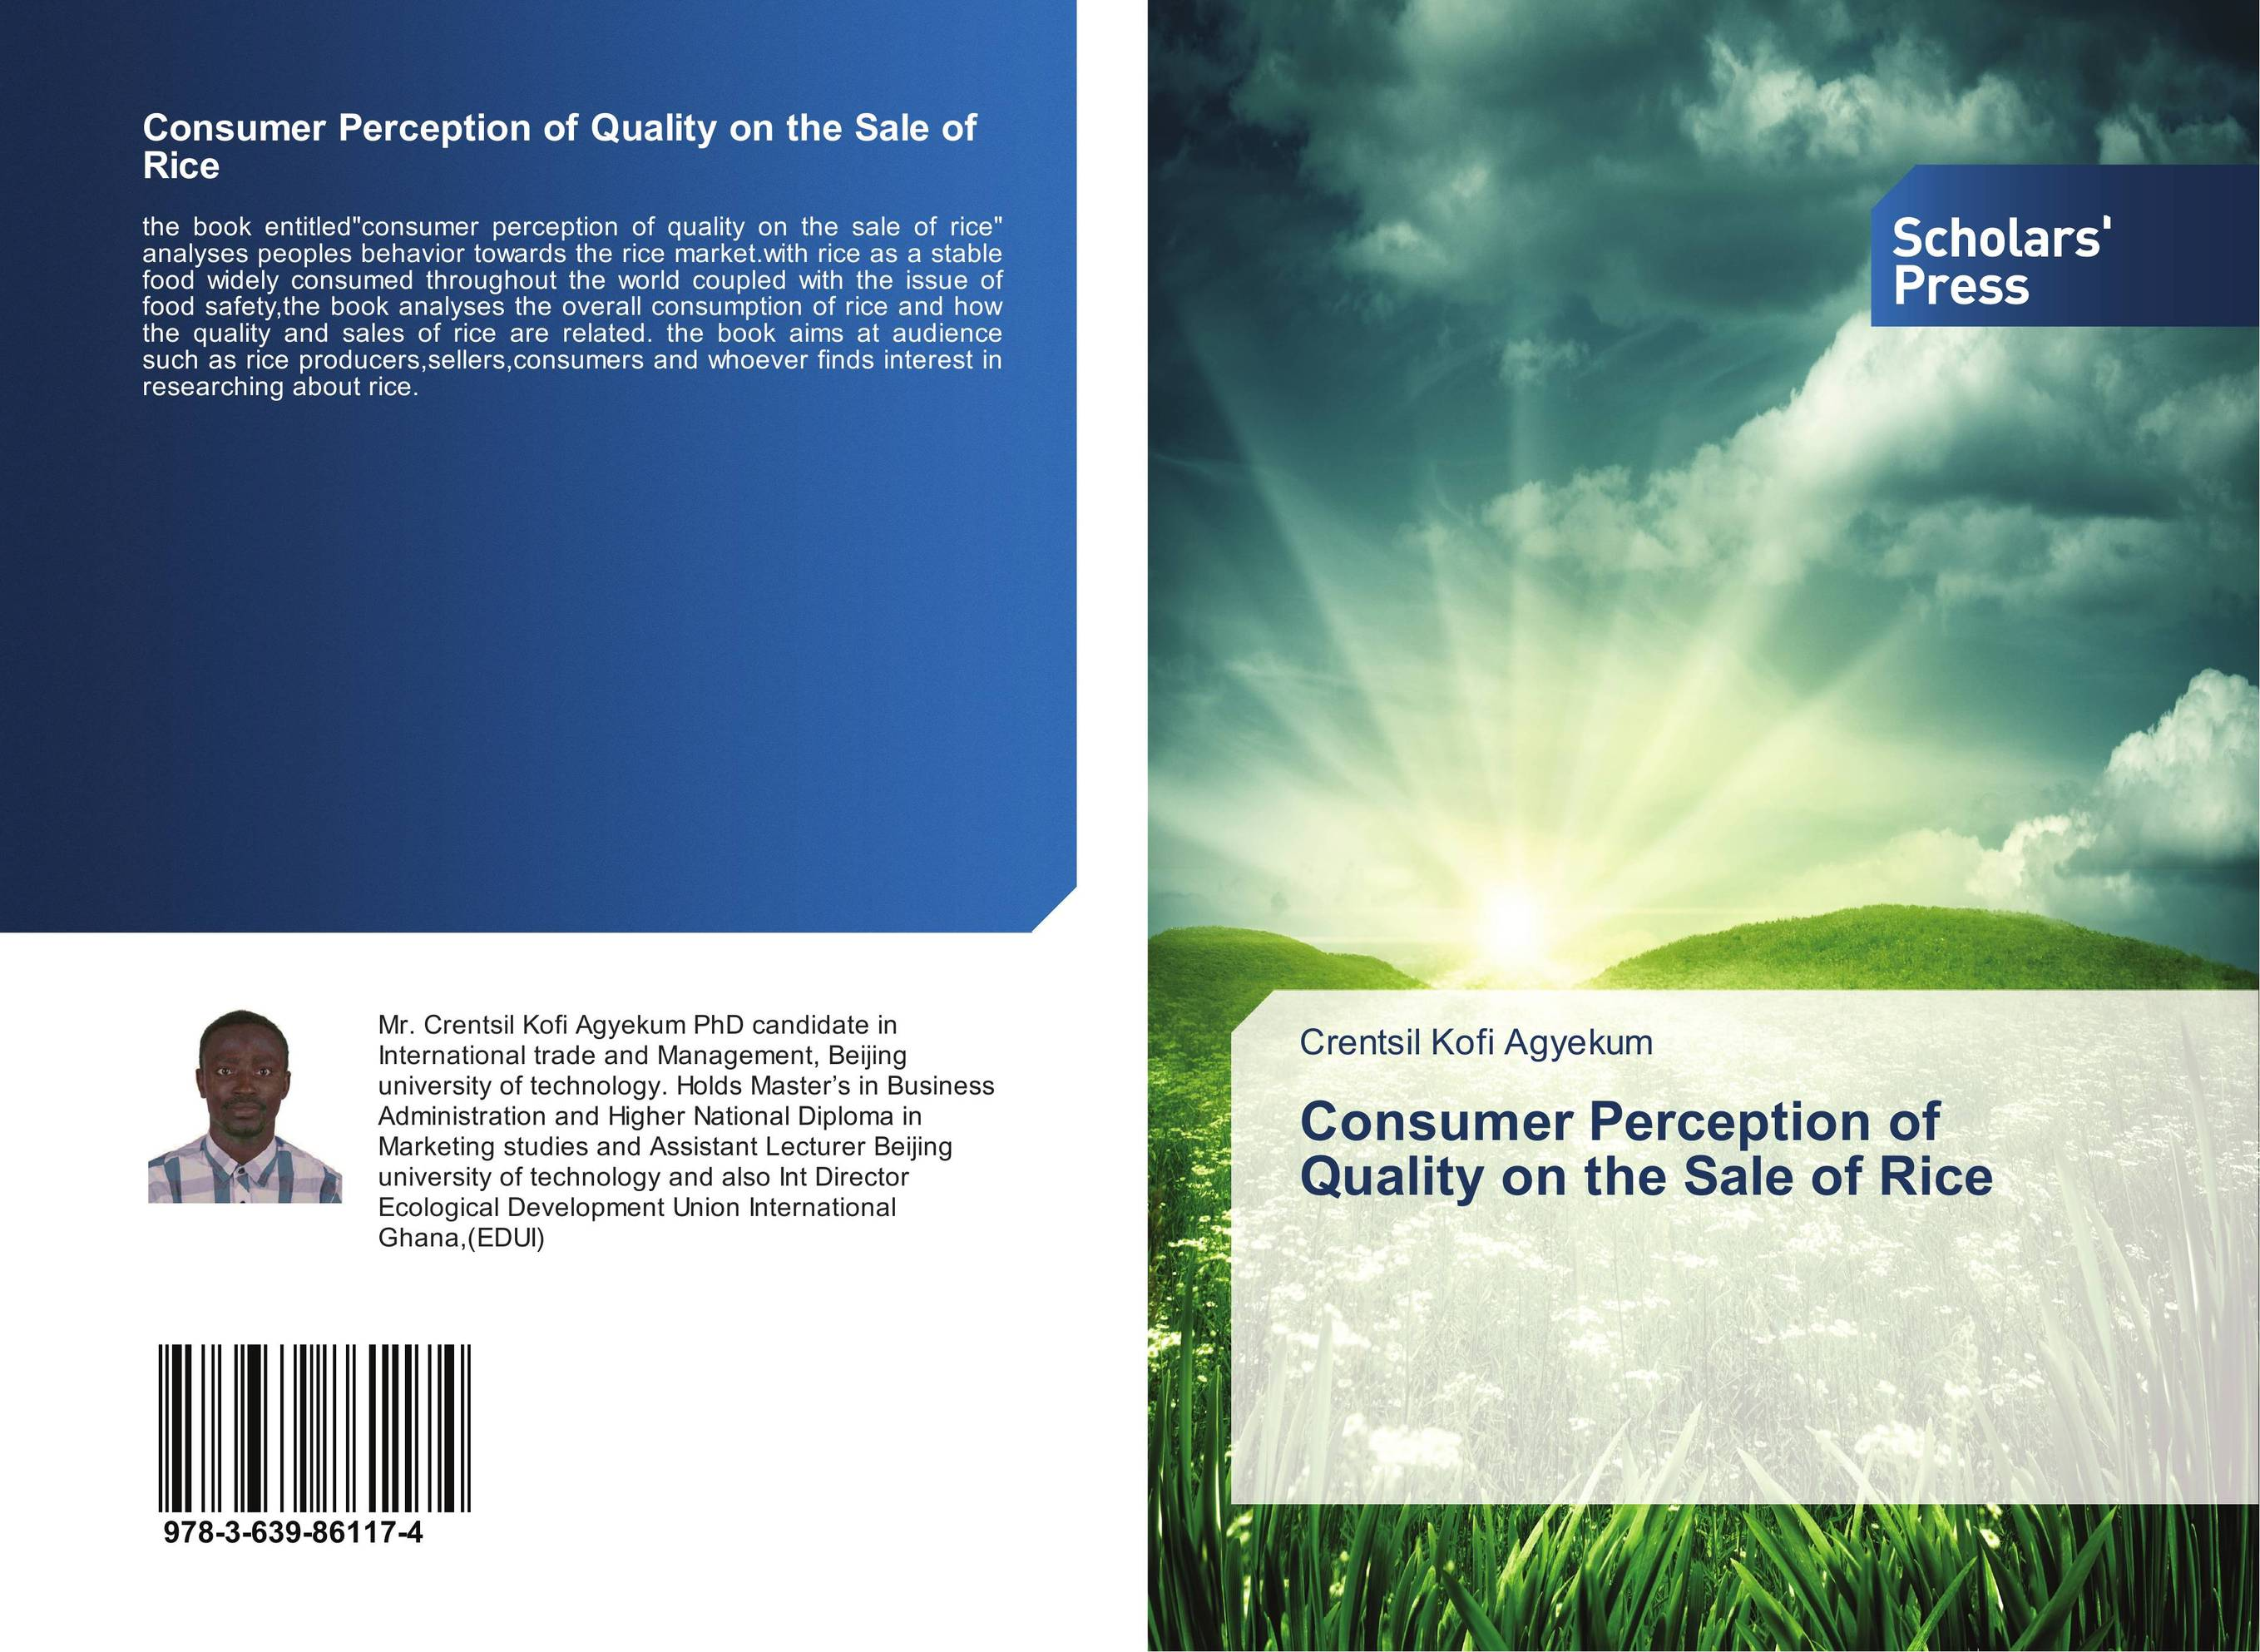 consumer perception towards organic food products in india essay A study of consumer perception and preferences in india organic foods  this paper highlights the consumers' perception and preferences towards green.